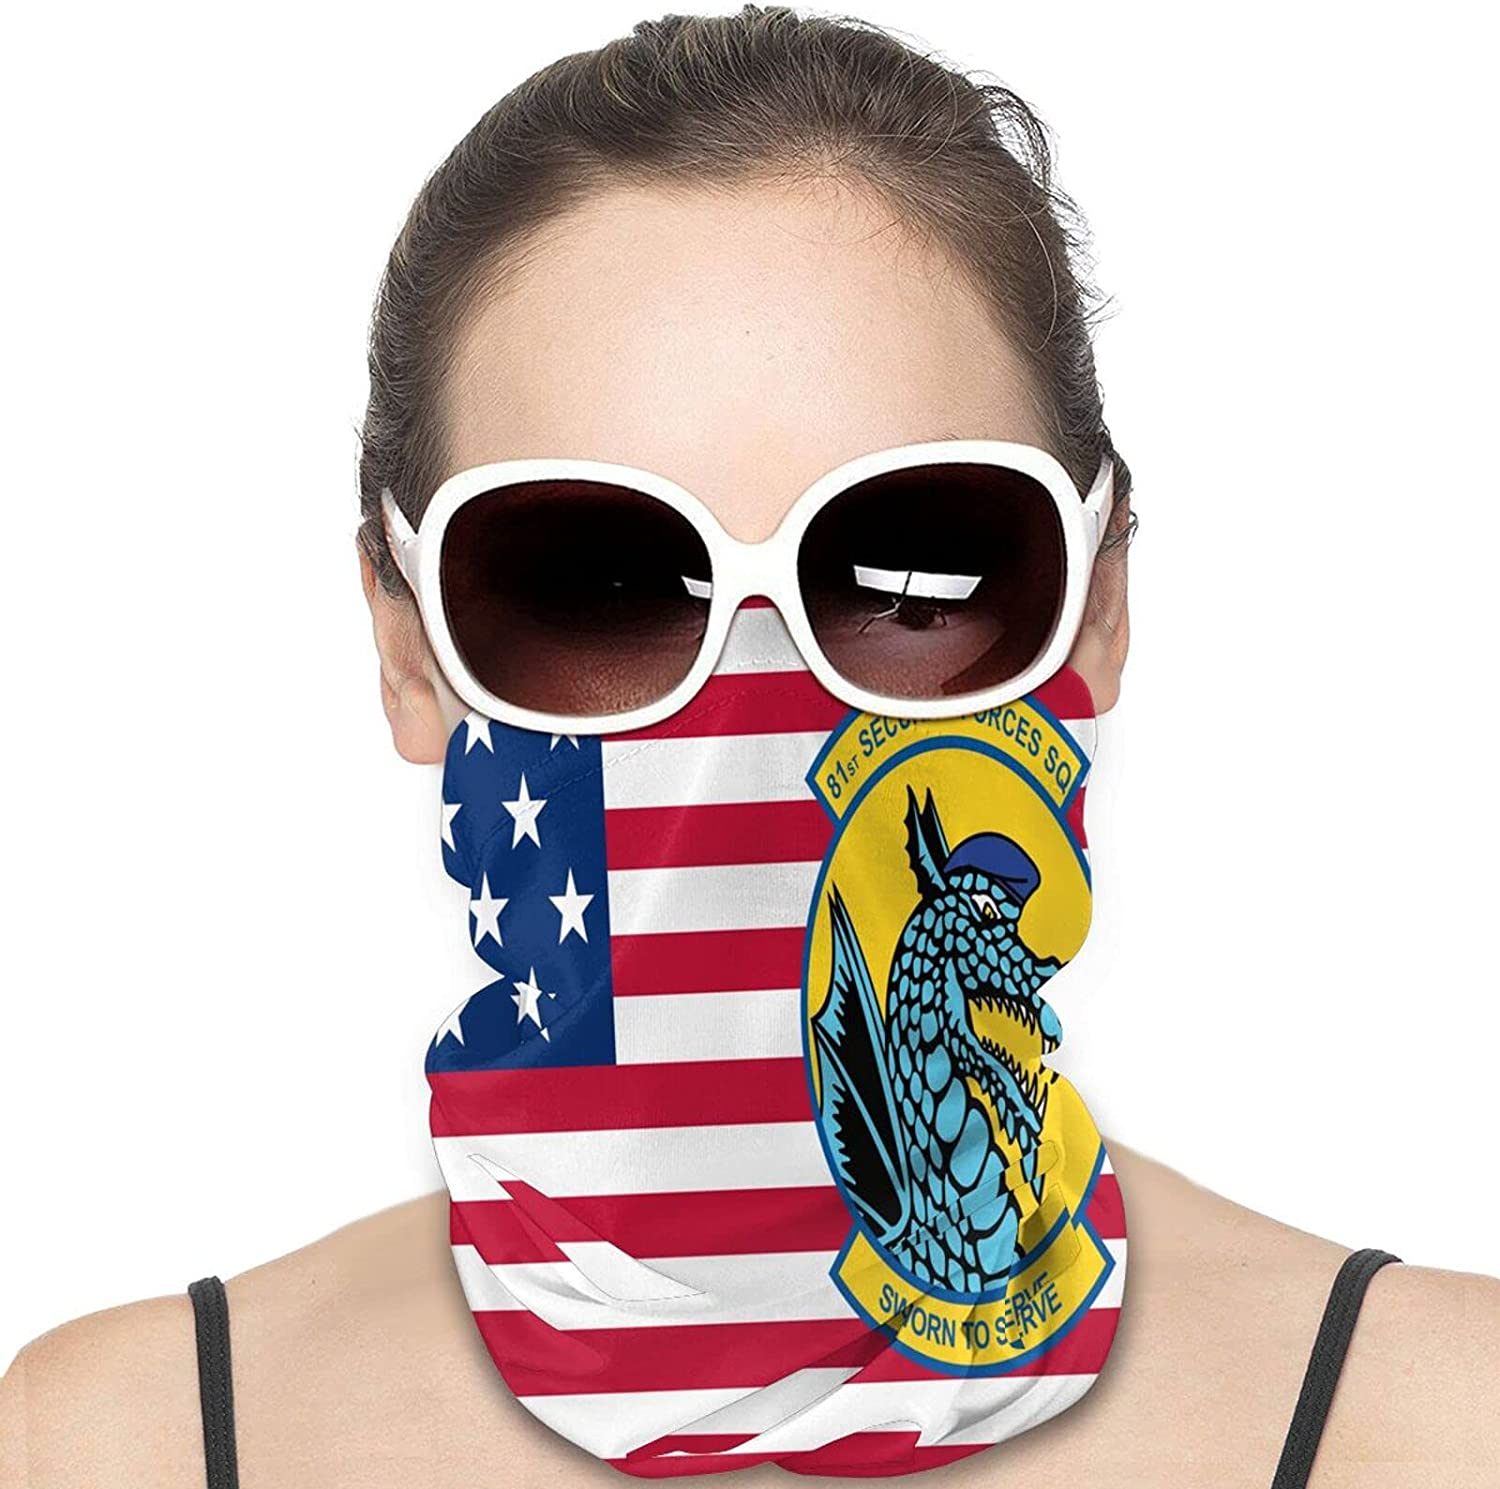 81st Security Forces Squad-ron Round Neck Gaiter Bandnas Face Cover Uv Protection Prevent bask in Ice Scarf Headbands Perfect for Motorcycle Cycling Running Festival Raves Outdoors